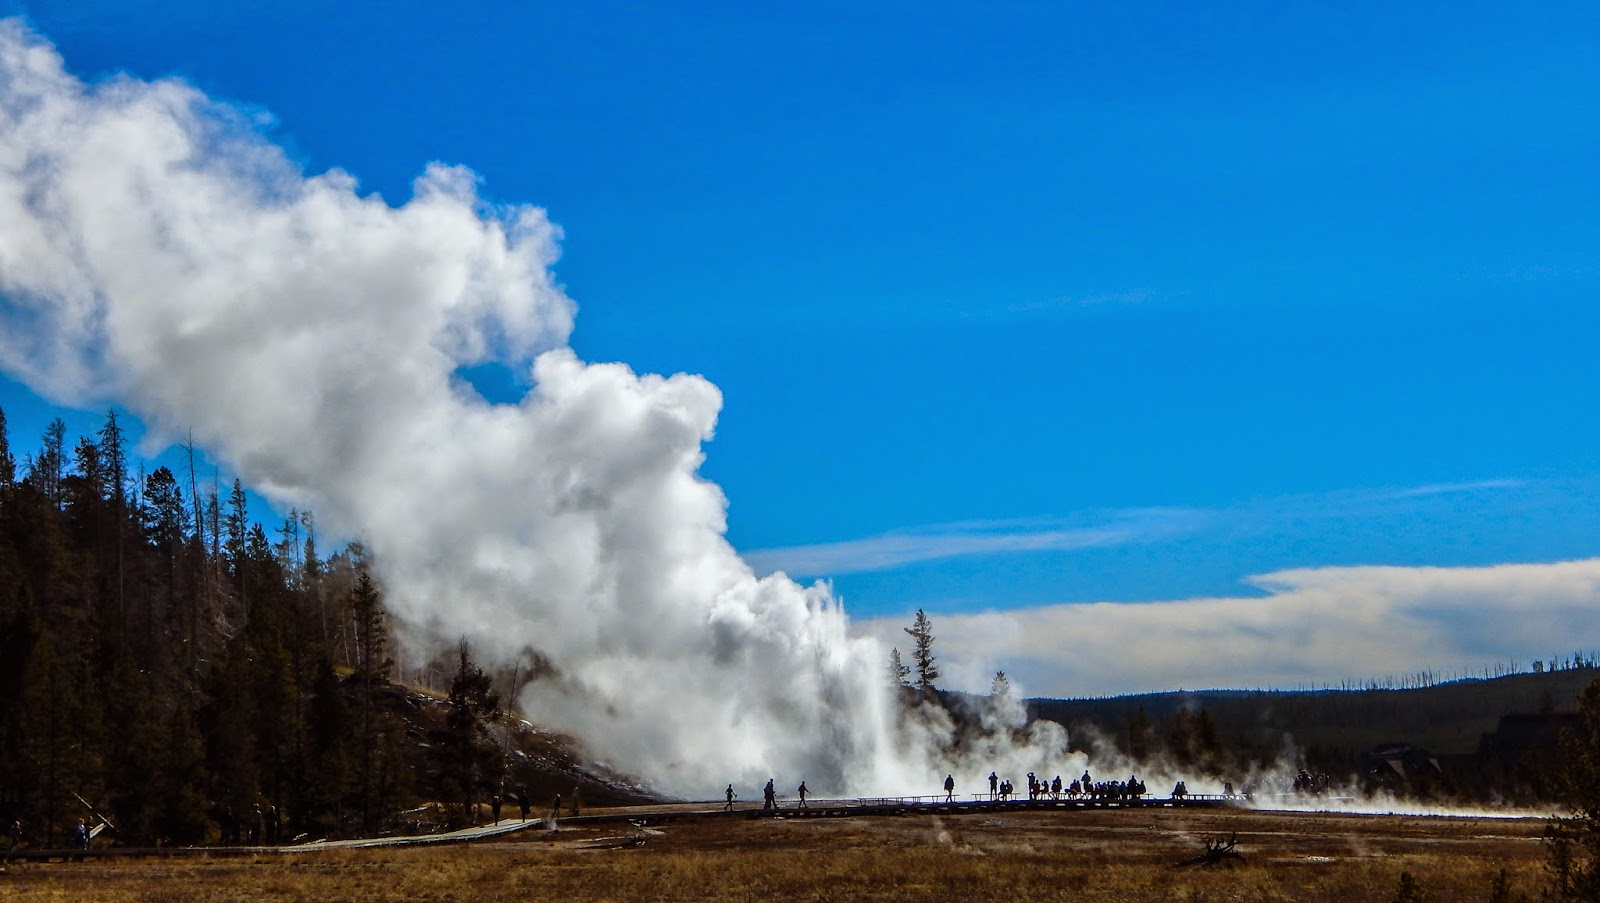 Your place Watching the geyser